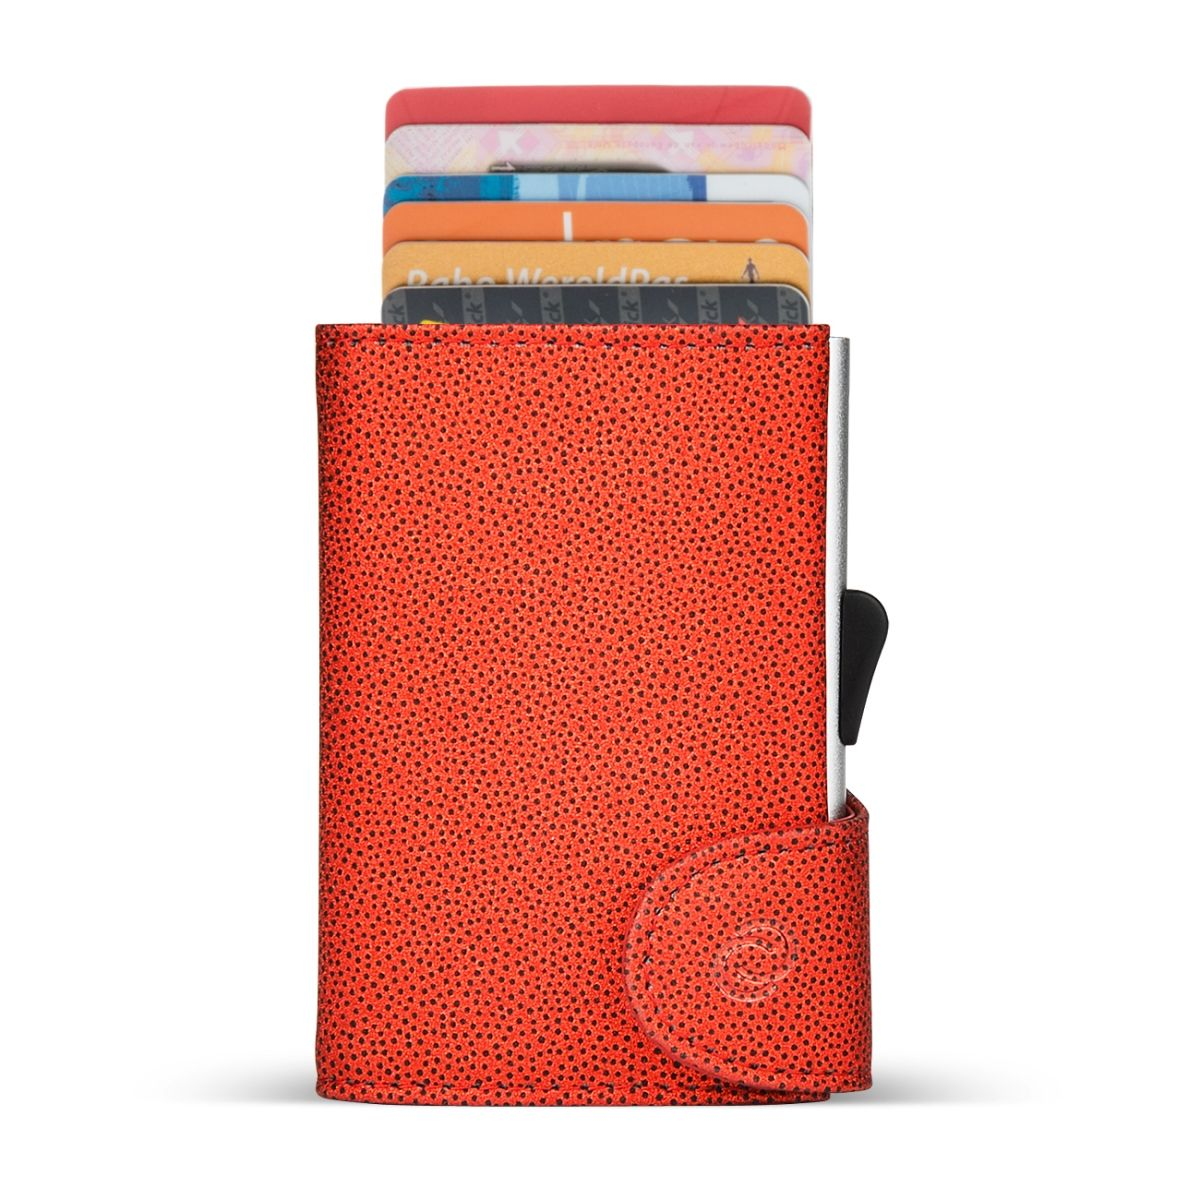 C-Secure Aluminum Card Holder with Genuine Leather - Fashion Red